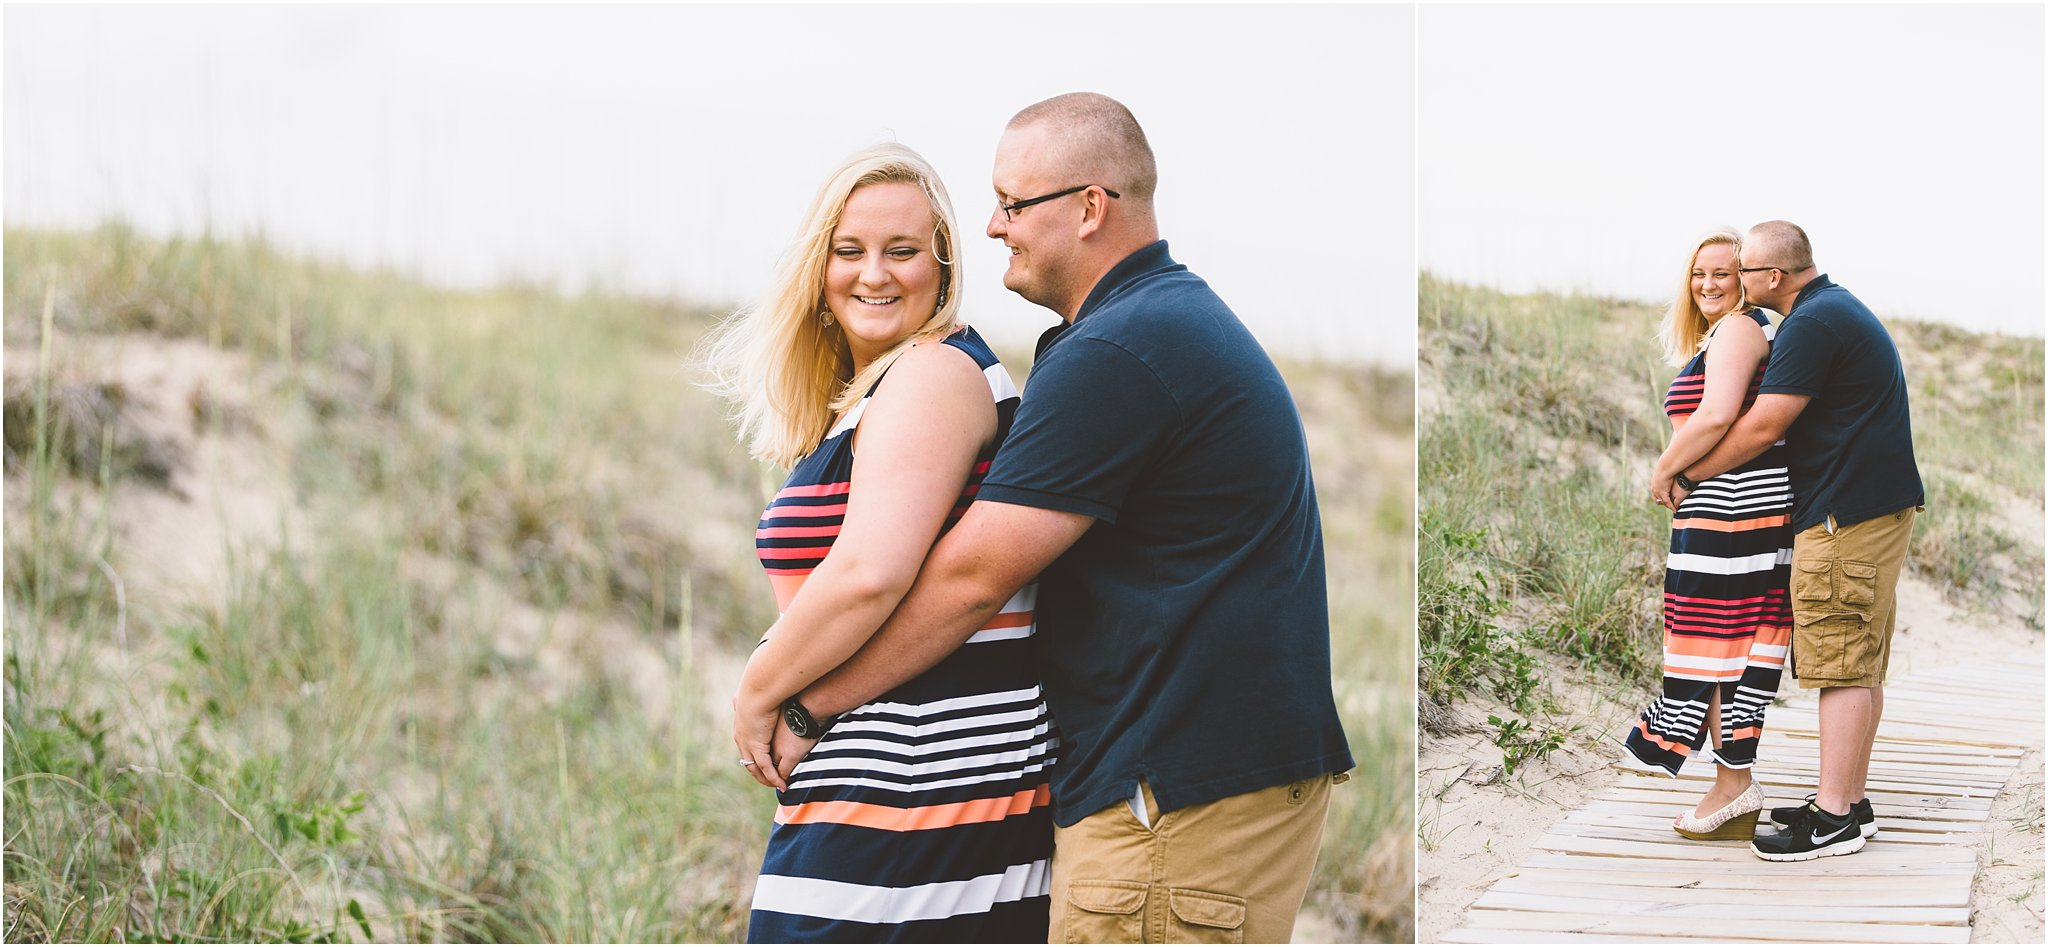 jessica_ryan_photography_virginia_beach_virginia_engagements_engagement_photographer_candid_1021